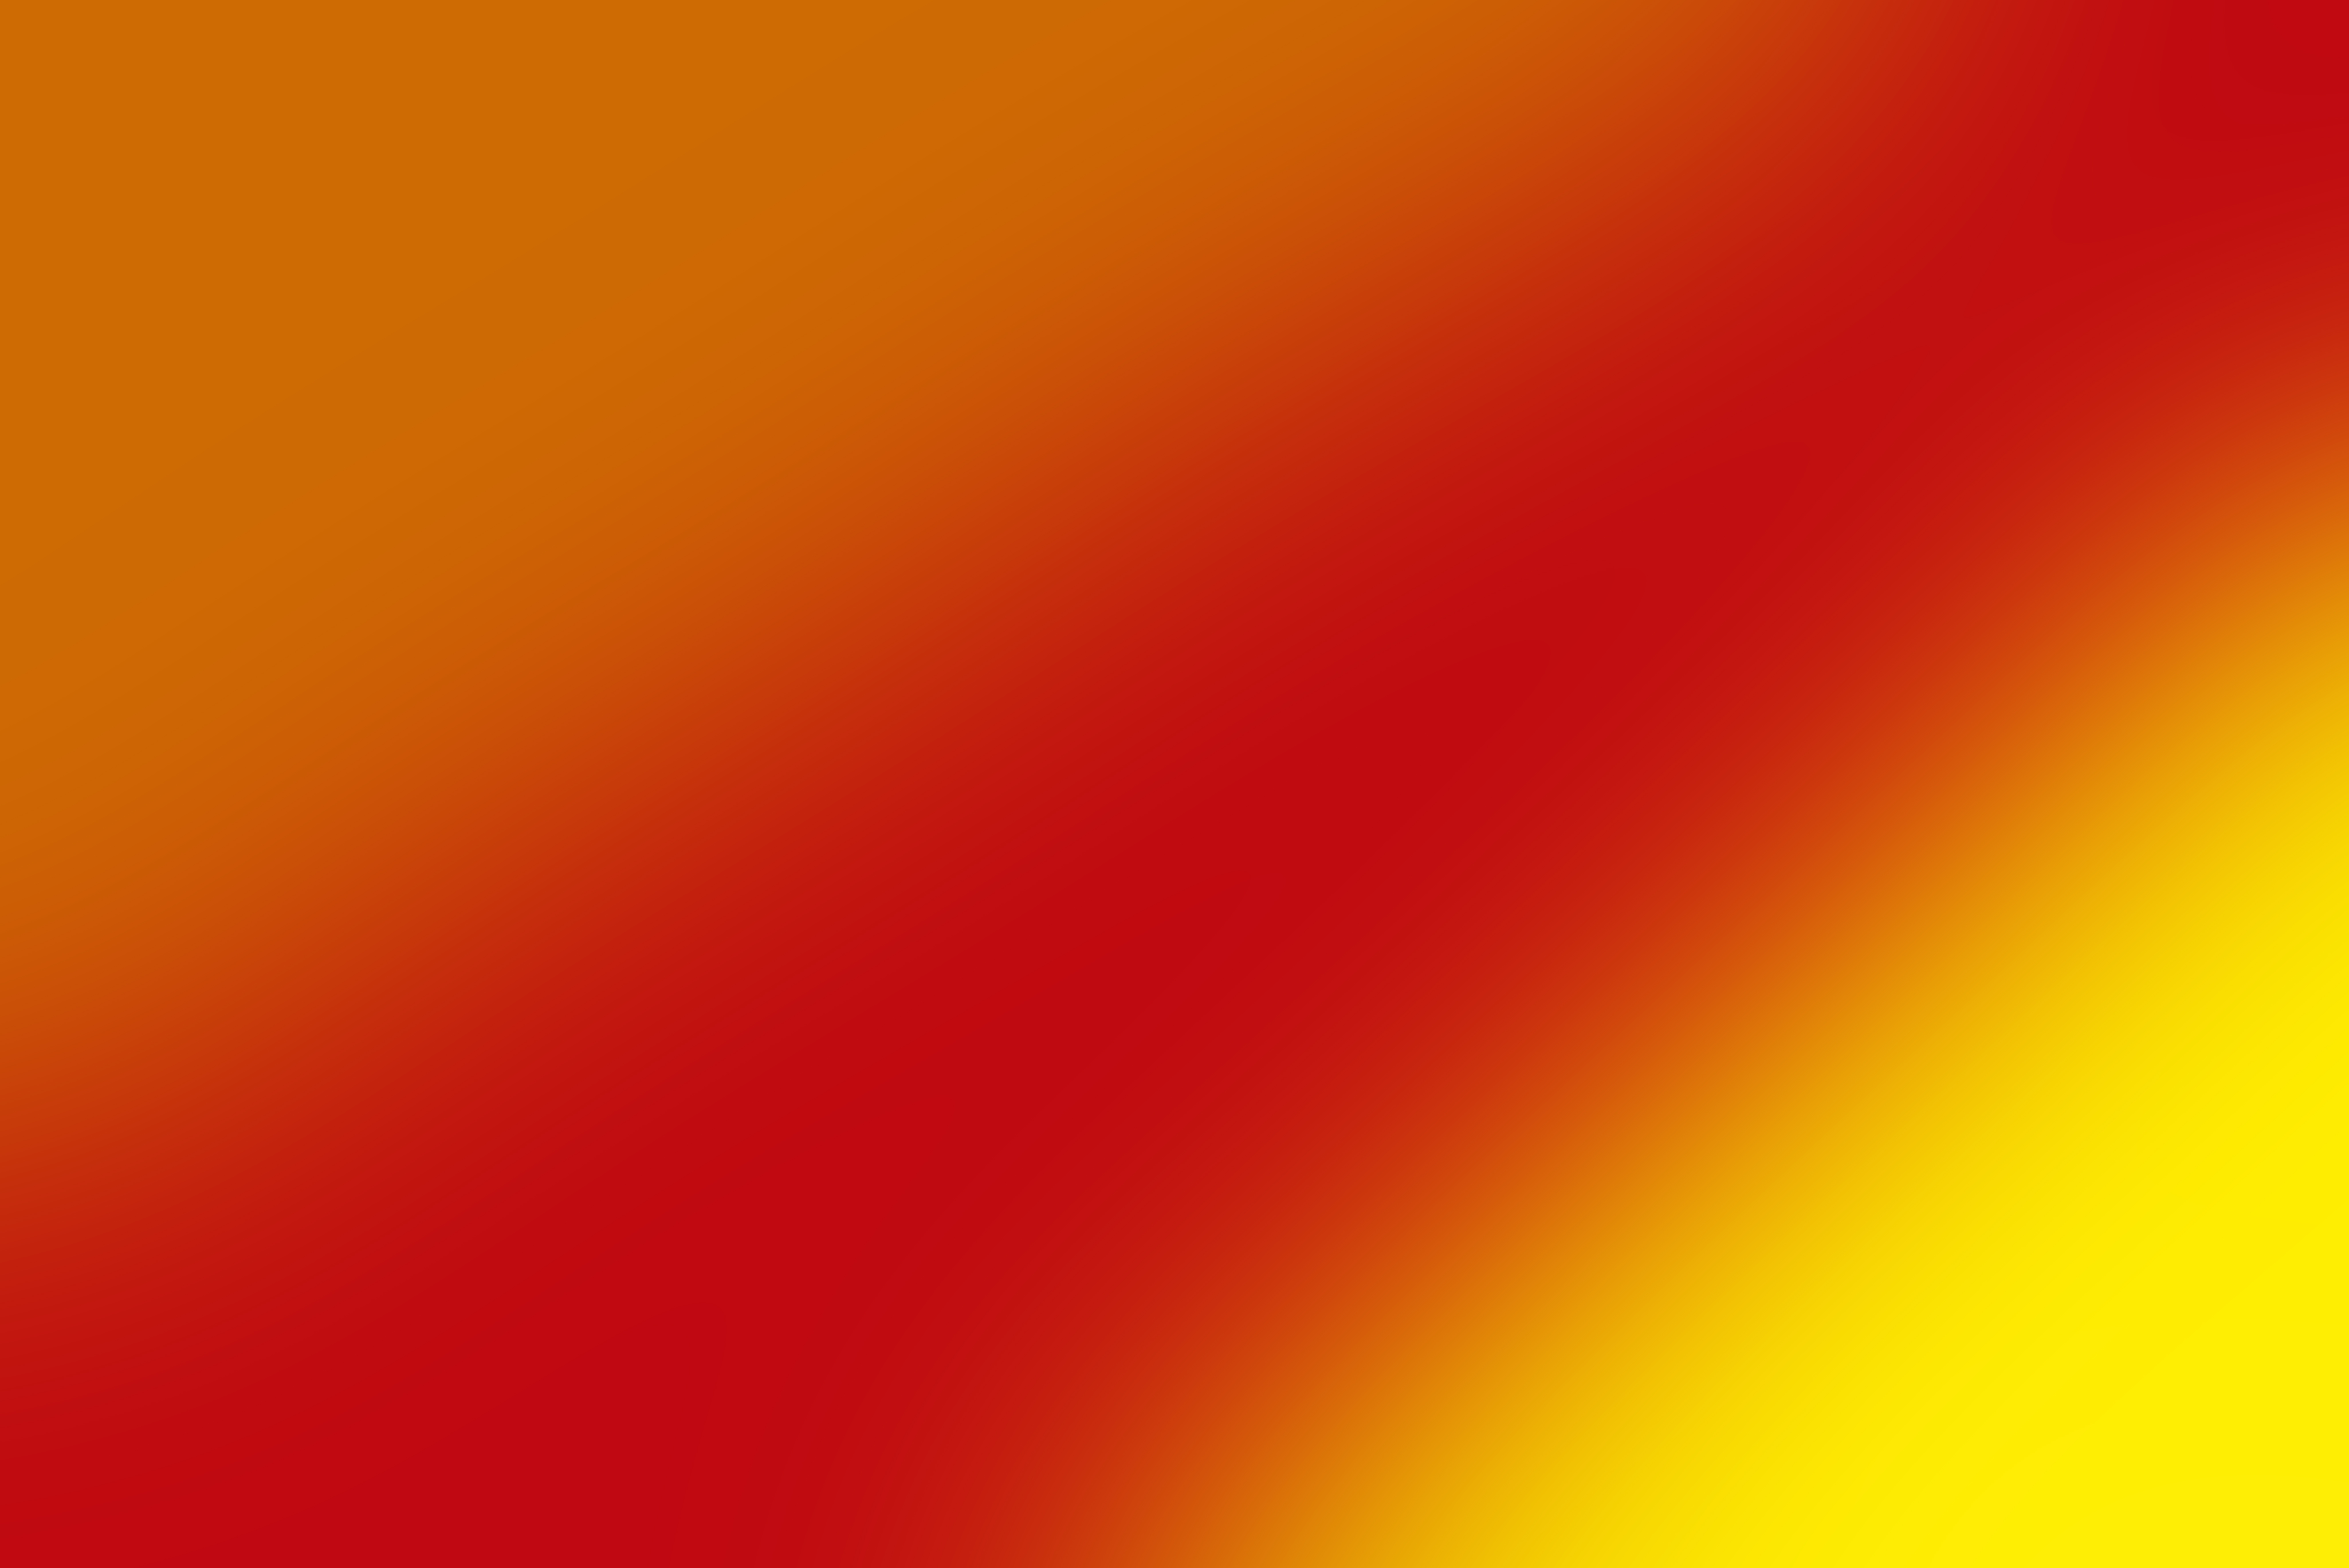 blurred-pop-abstract-background-with-warm-colors-red-orange-and-yellow